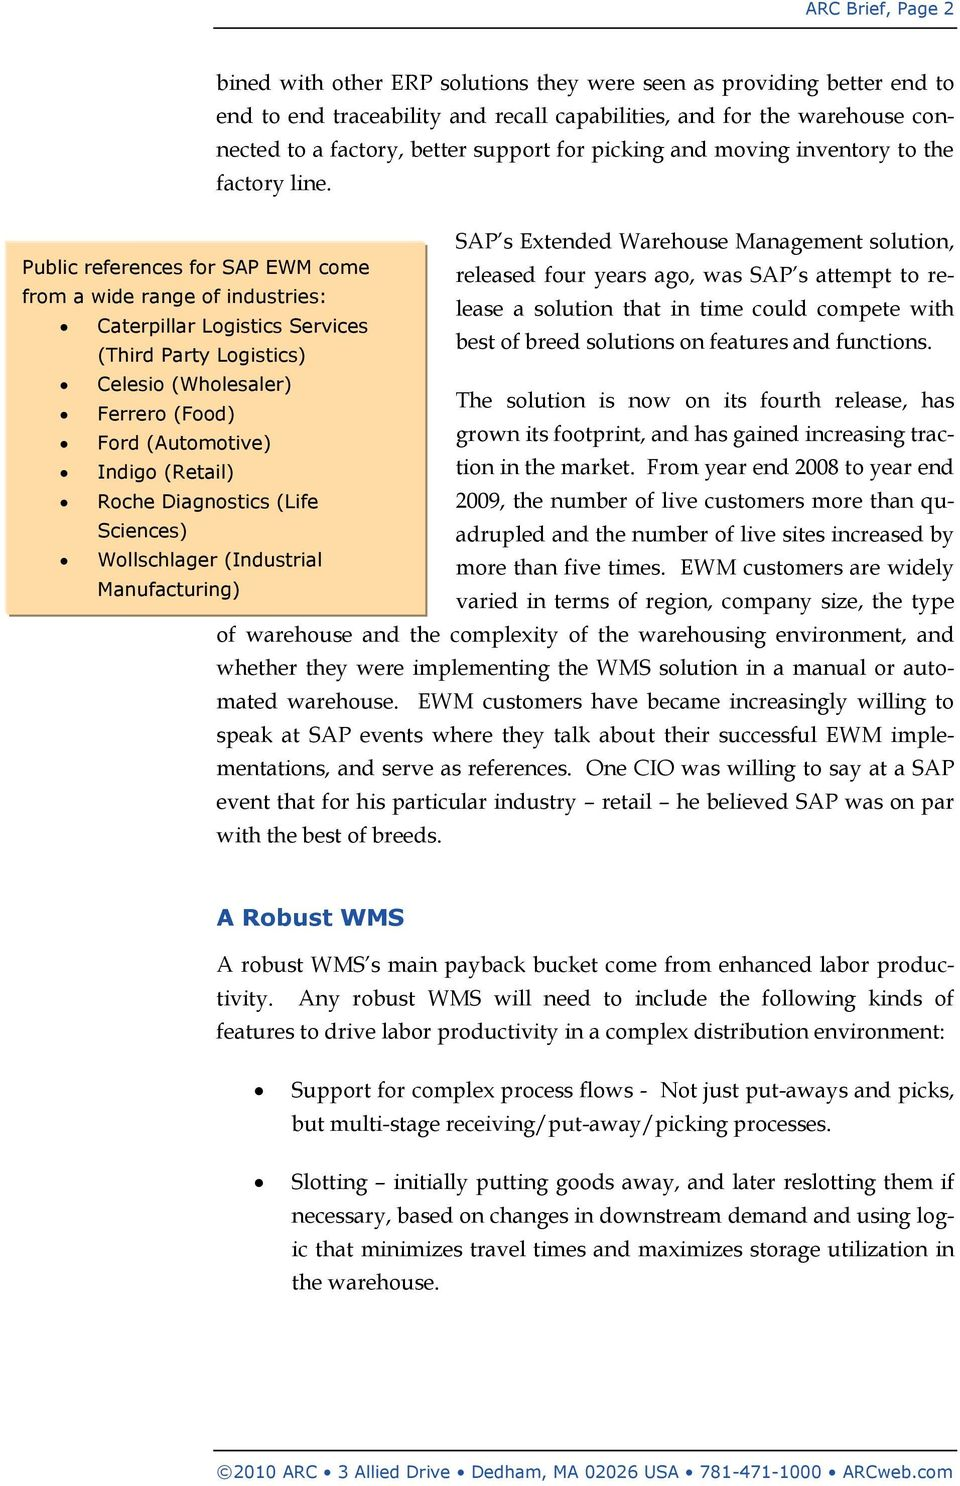 SAP EWM: A Rival to Best of Breed Solutions? Growing